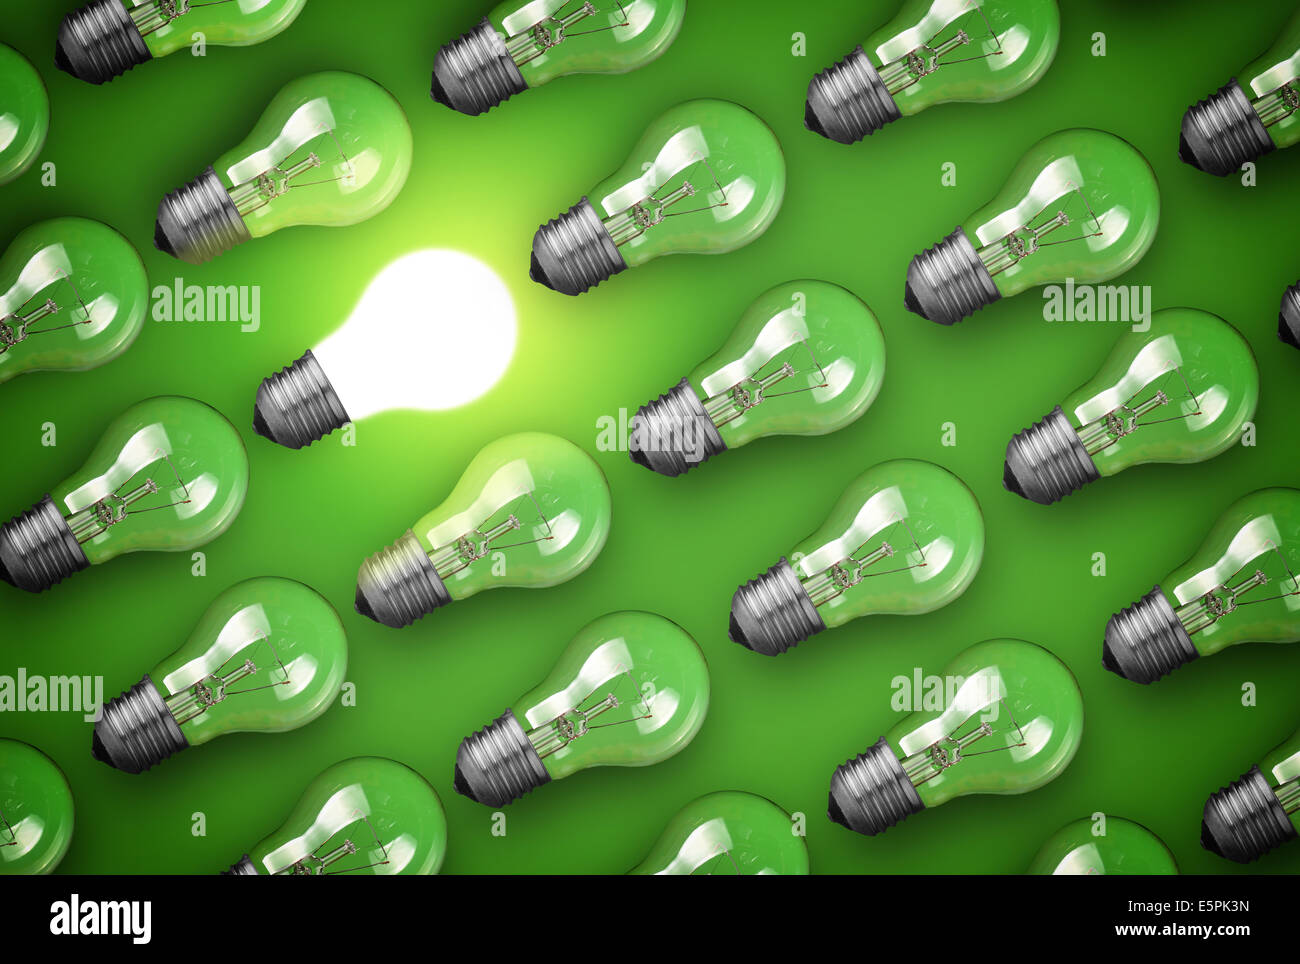 Idea concept with light bulbs on green - Stock Image